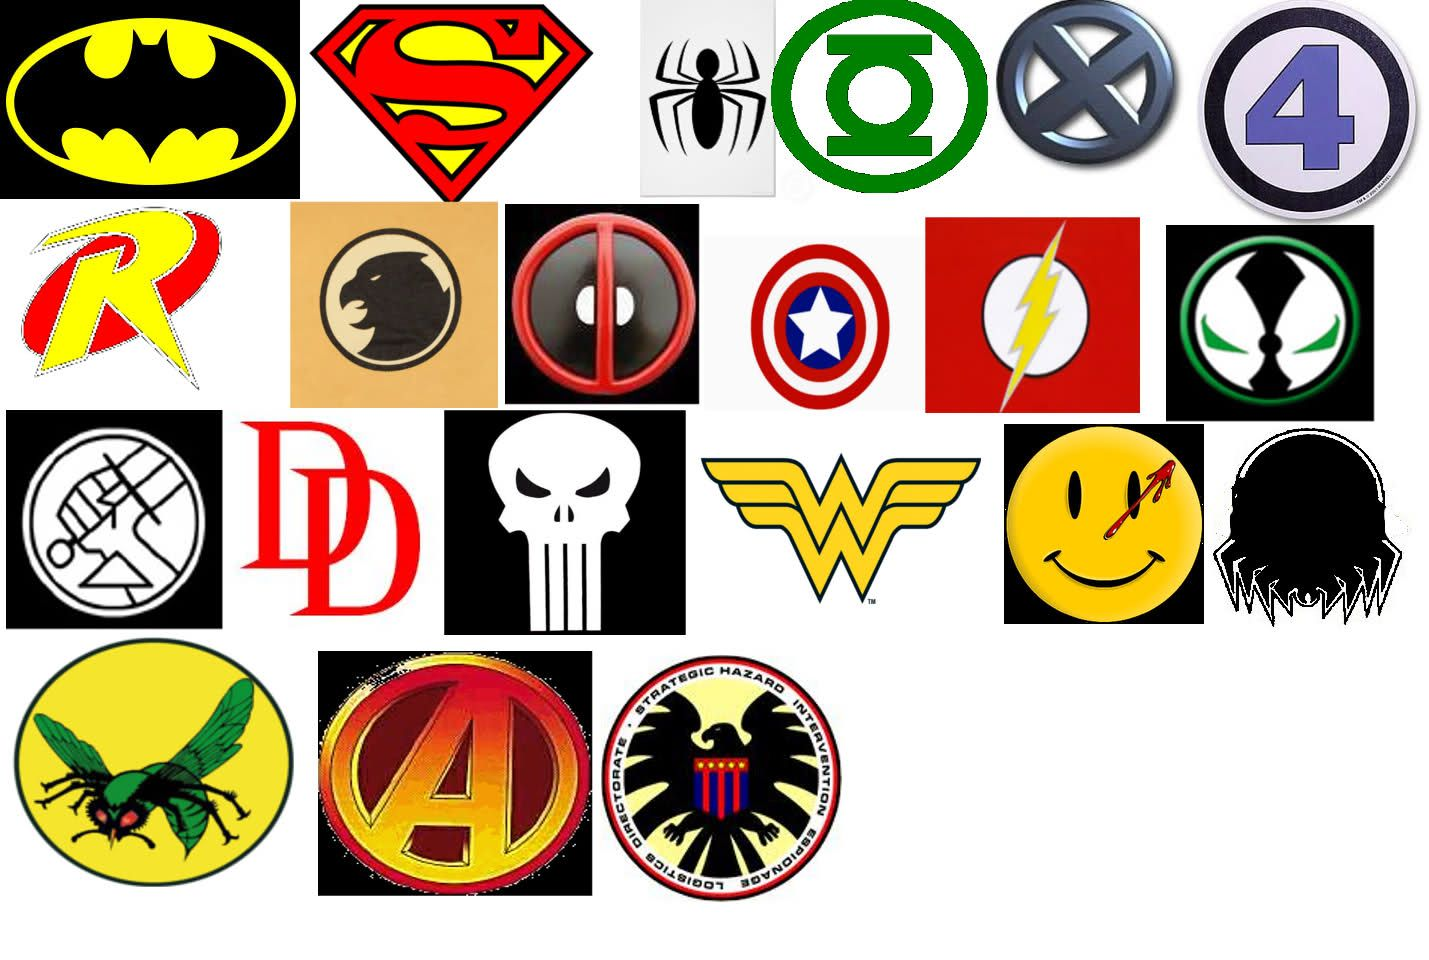 SUPERHERO LOGOS LIST AND NAMES image galleries - imageKB ...